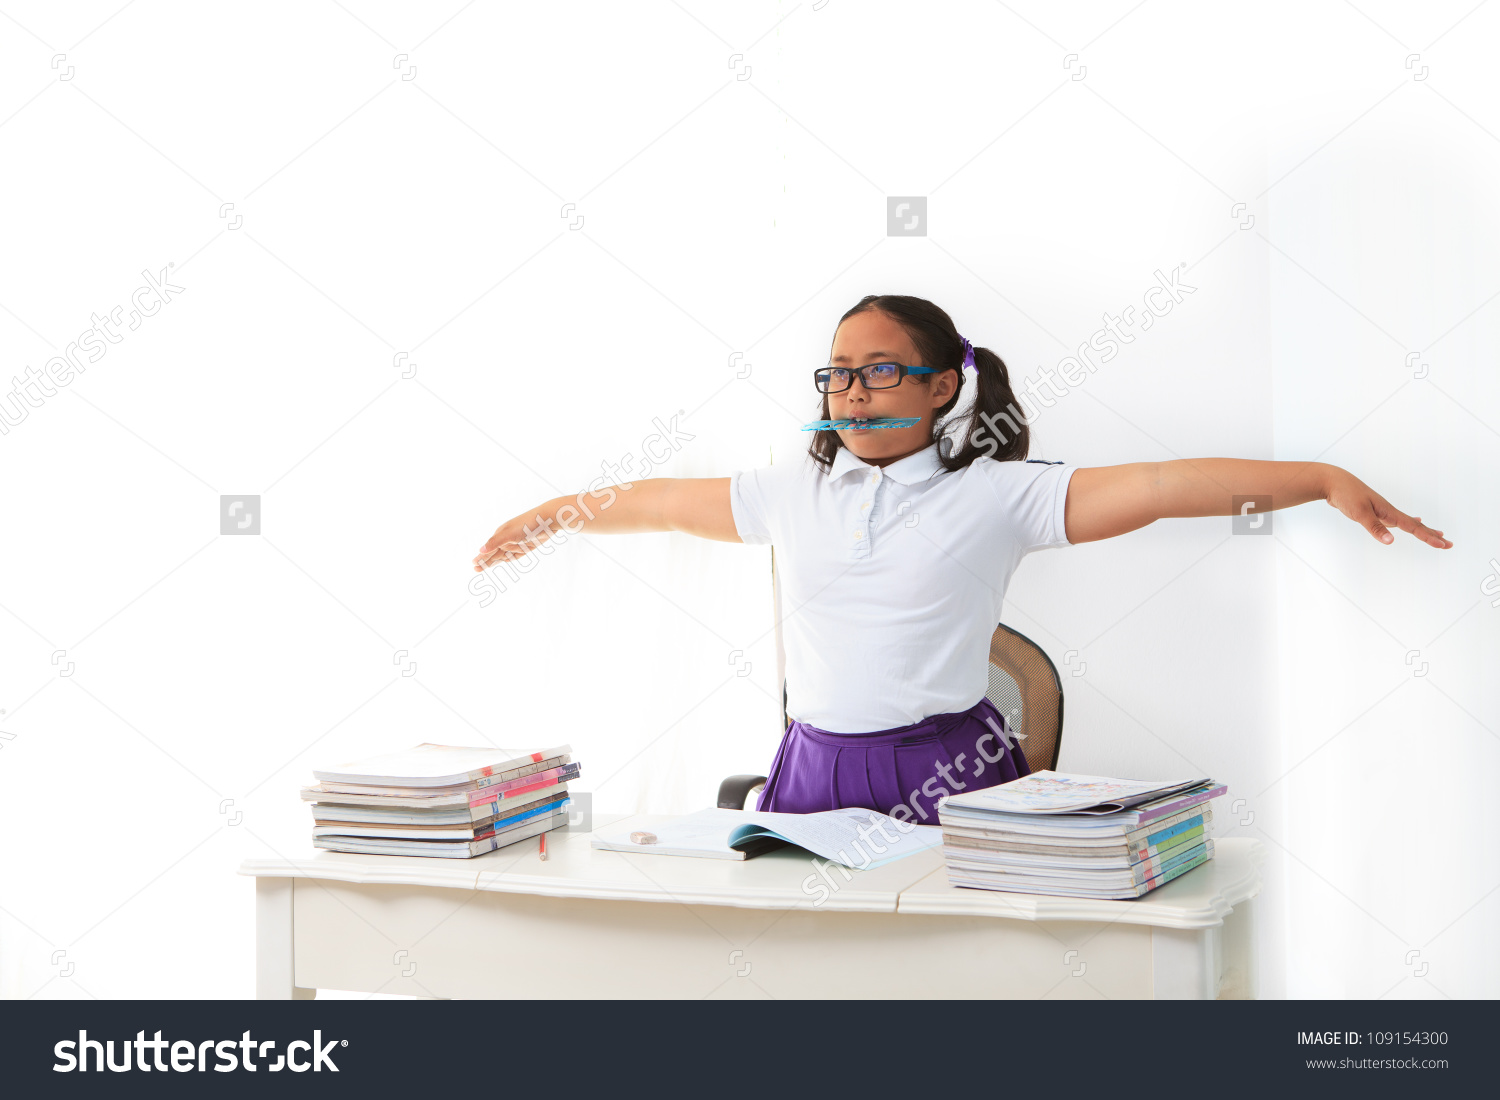 stock-photo-girl-standing-with-ruler-in-her-mouth-in-class-room-109154300